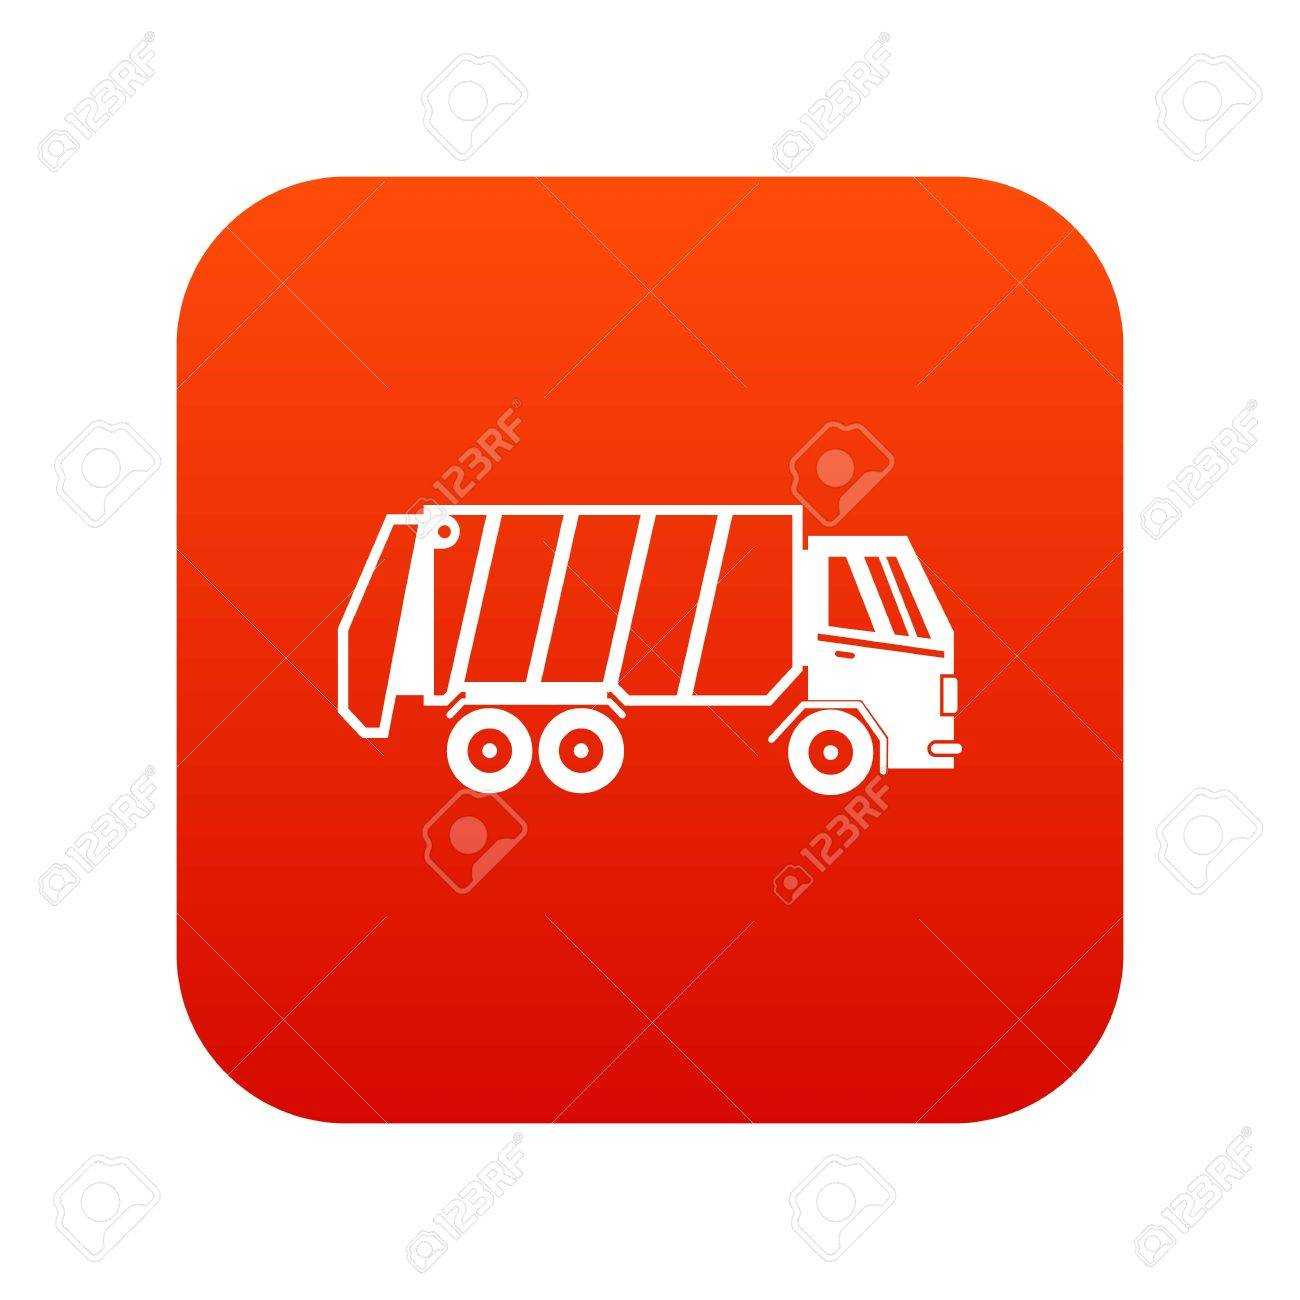 White Outline Illustration Of Garbage Truck Icon Isolated On